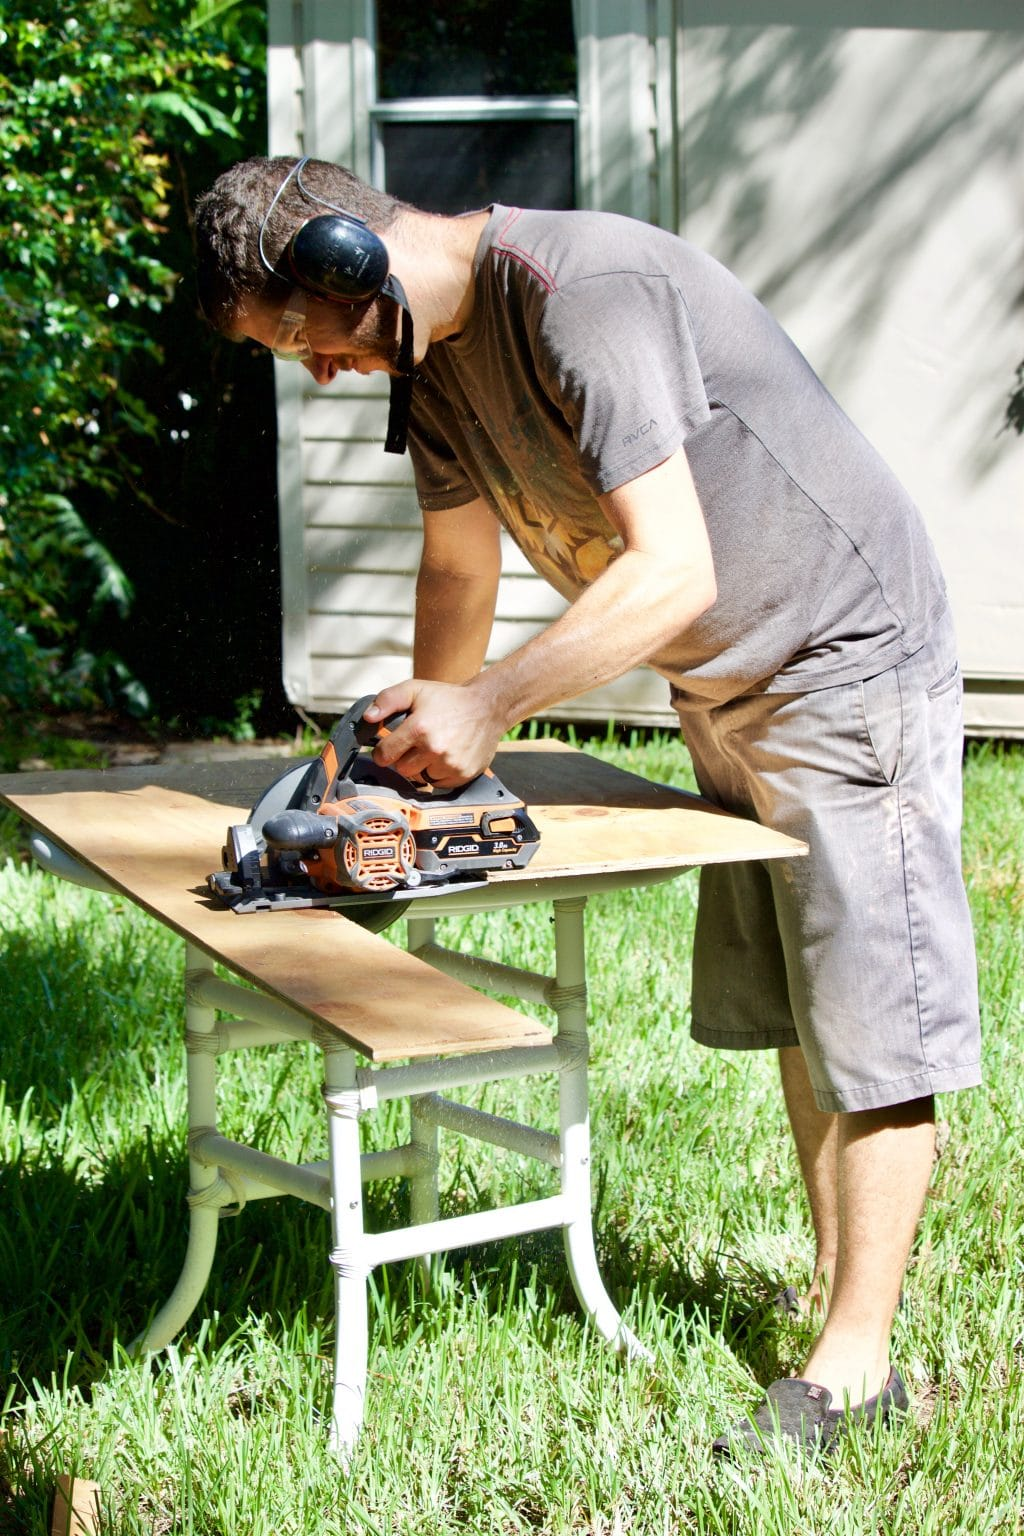 A man with a table saw cutting a piece of plywood on a table over grass.